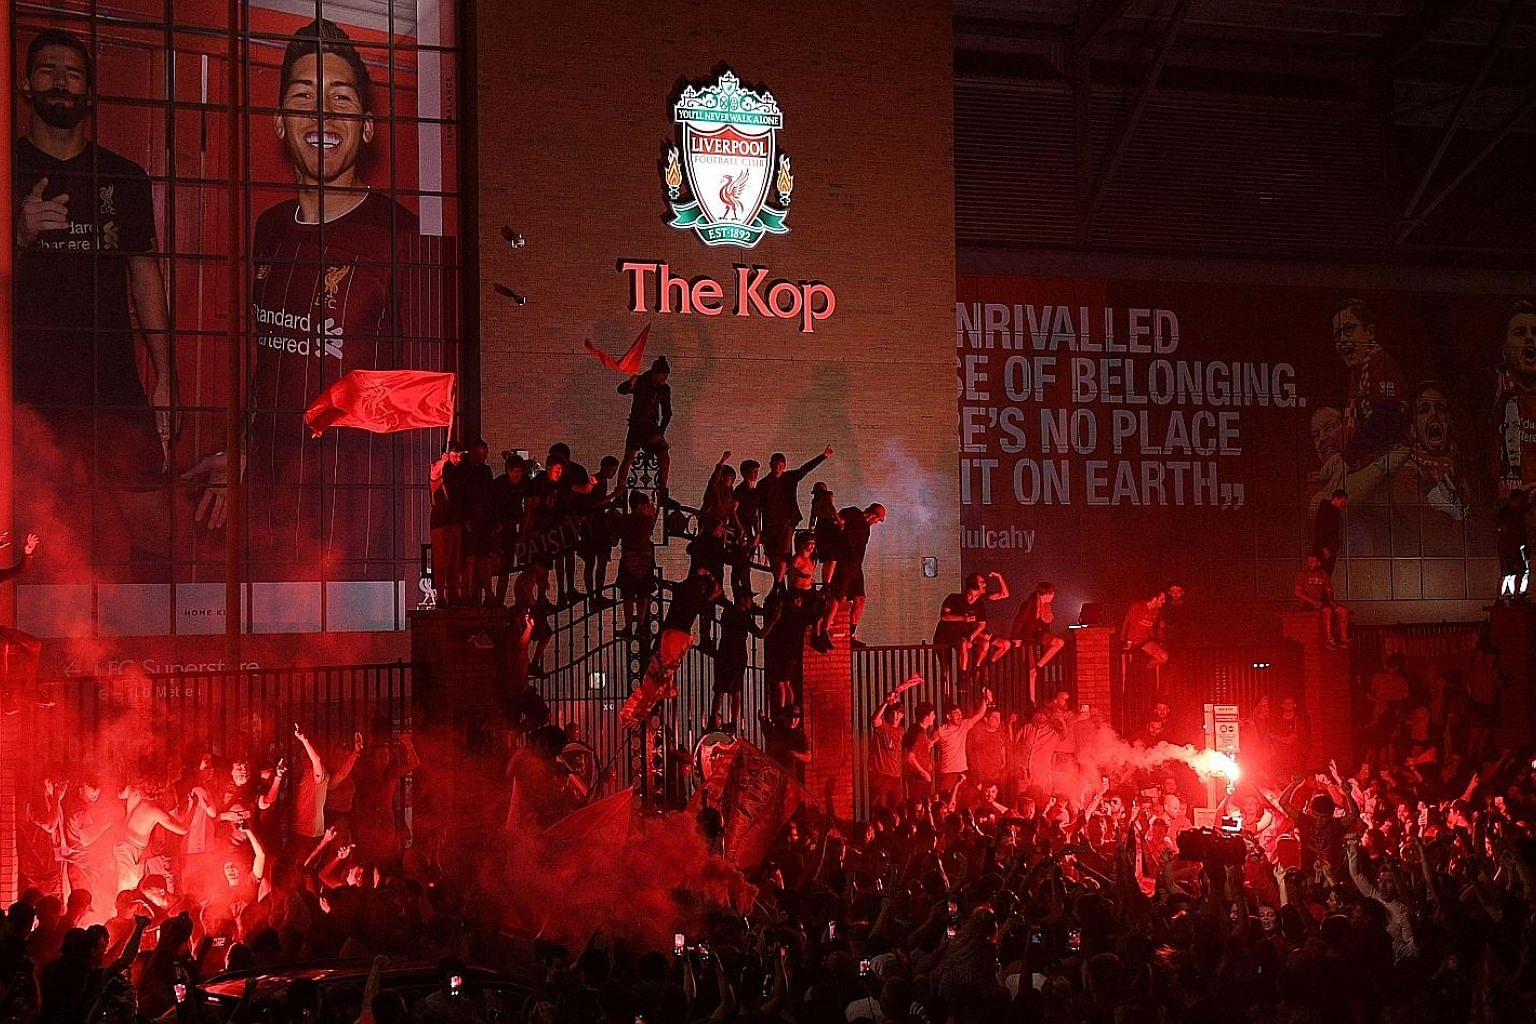 Young Liverpool fans Kendall, five, and Sadie, three, seem to be the only ones observing social distancing as they raise a Premier League trophy placard. But thousands (above) gathered outside Anfield to party within half an hour of the Reds' coronation,